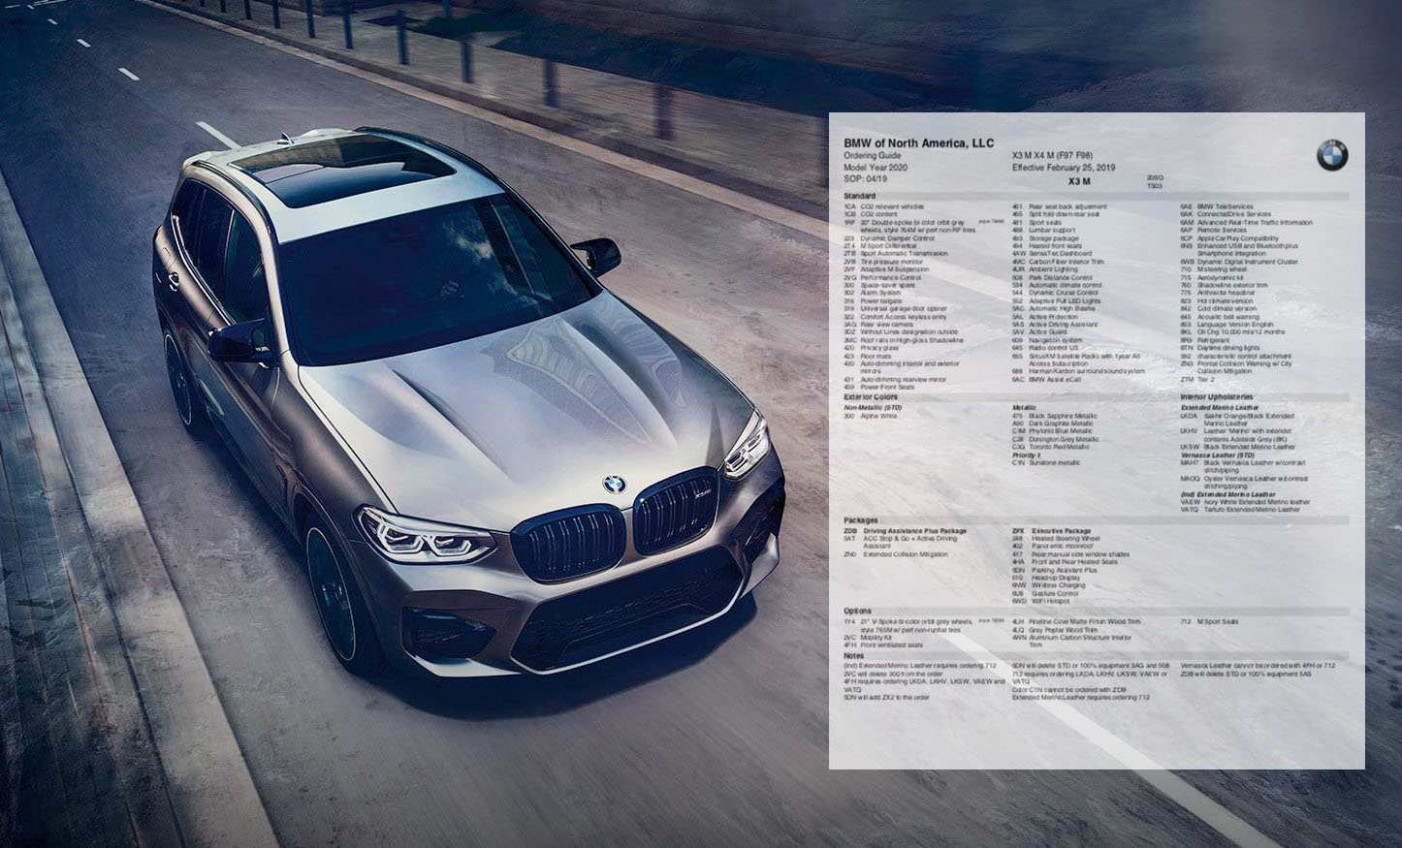 6 Bmw Ordering Guide - Car Review 6 : Car Review 6 | 2020 BMW Order Guide